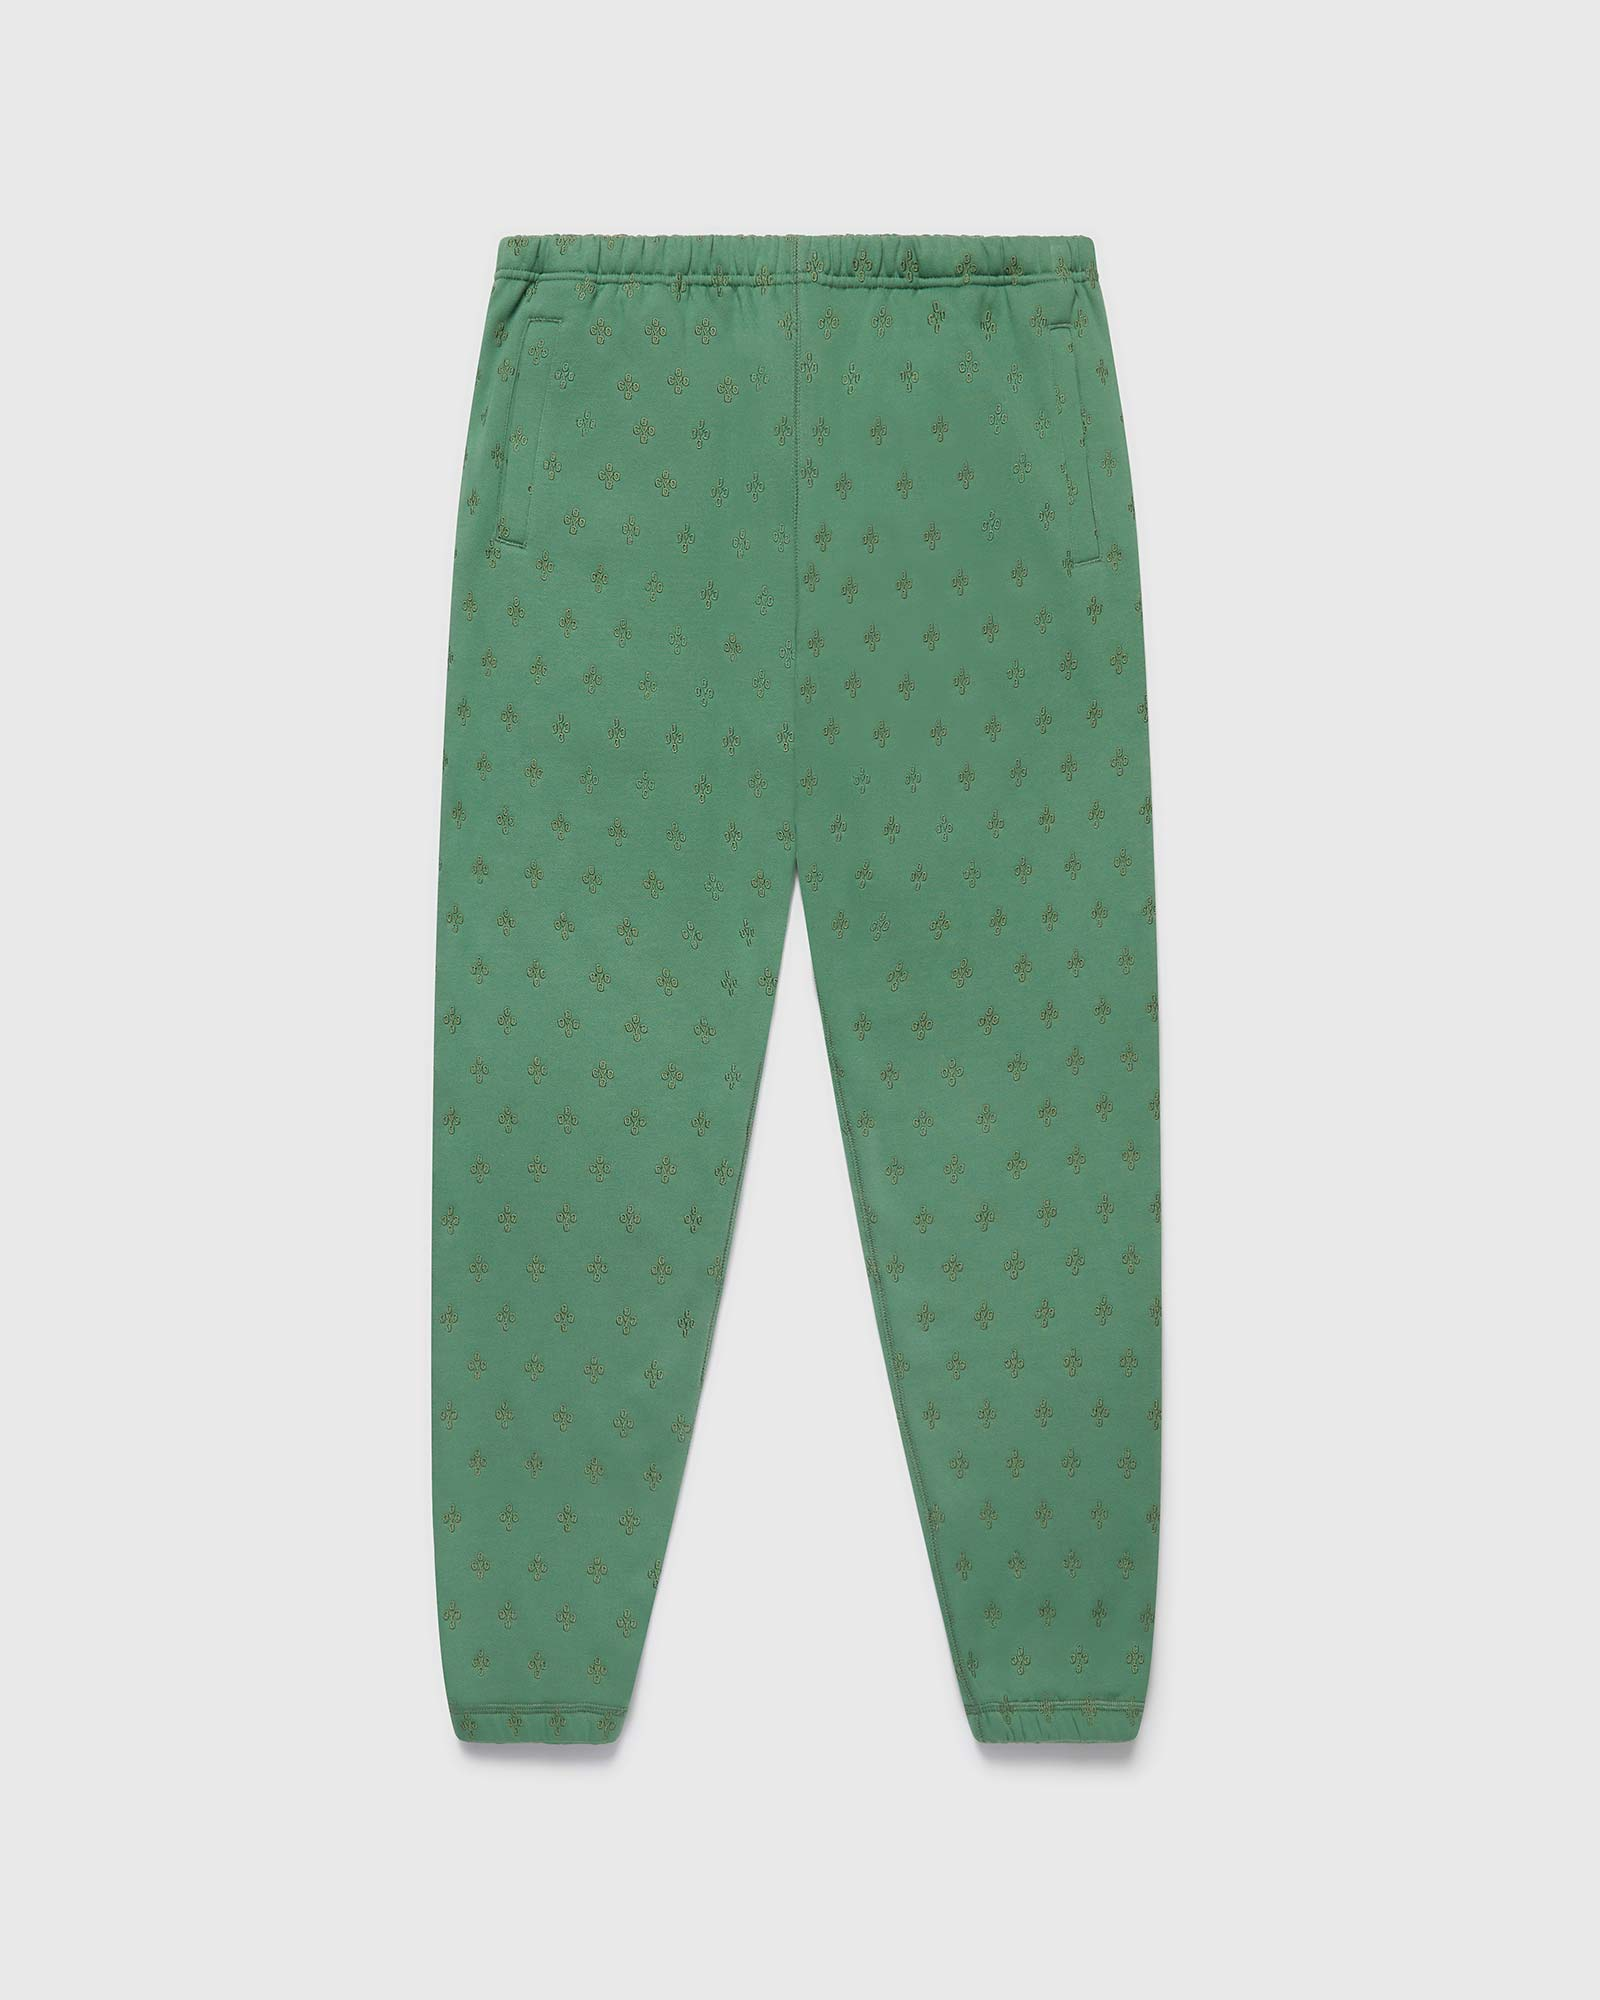 MONOGRAM SWEATPANT - EVERGREEN IMAGE #1